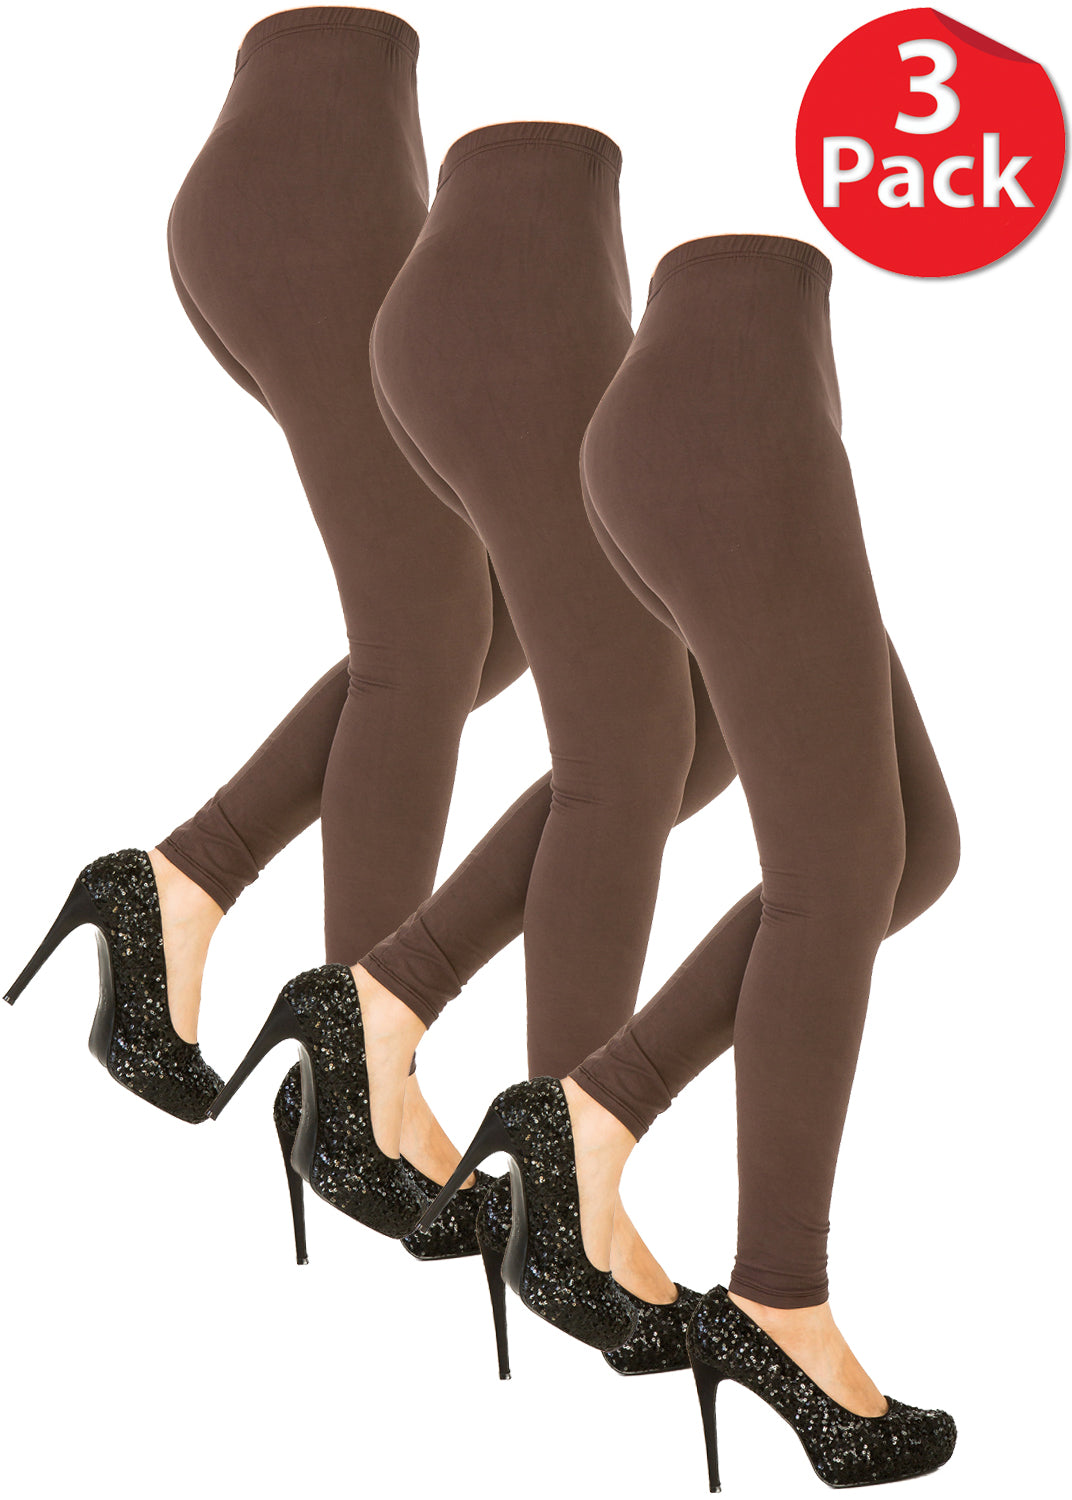 3 PCS Solid Brown Leggings Pack